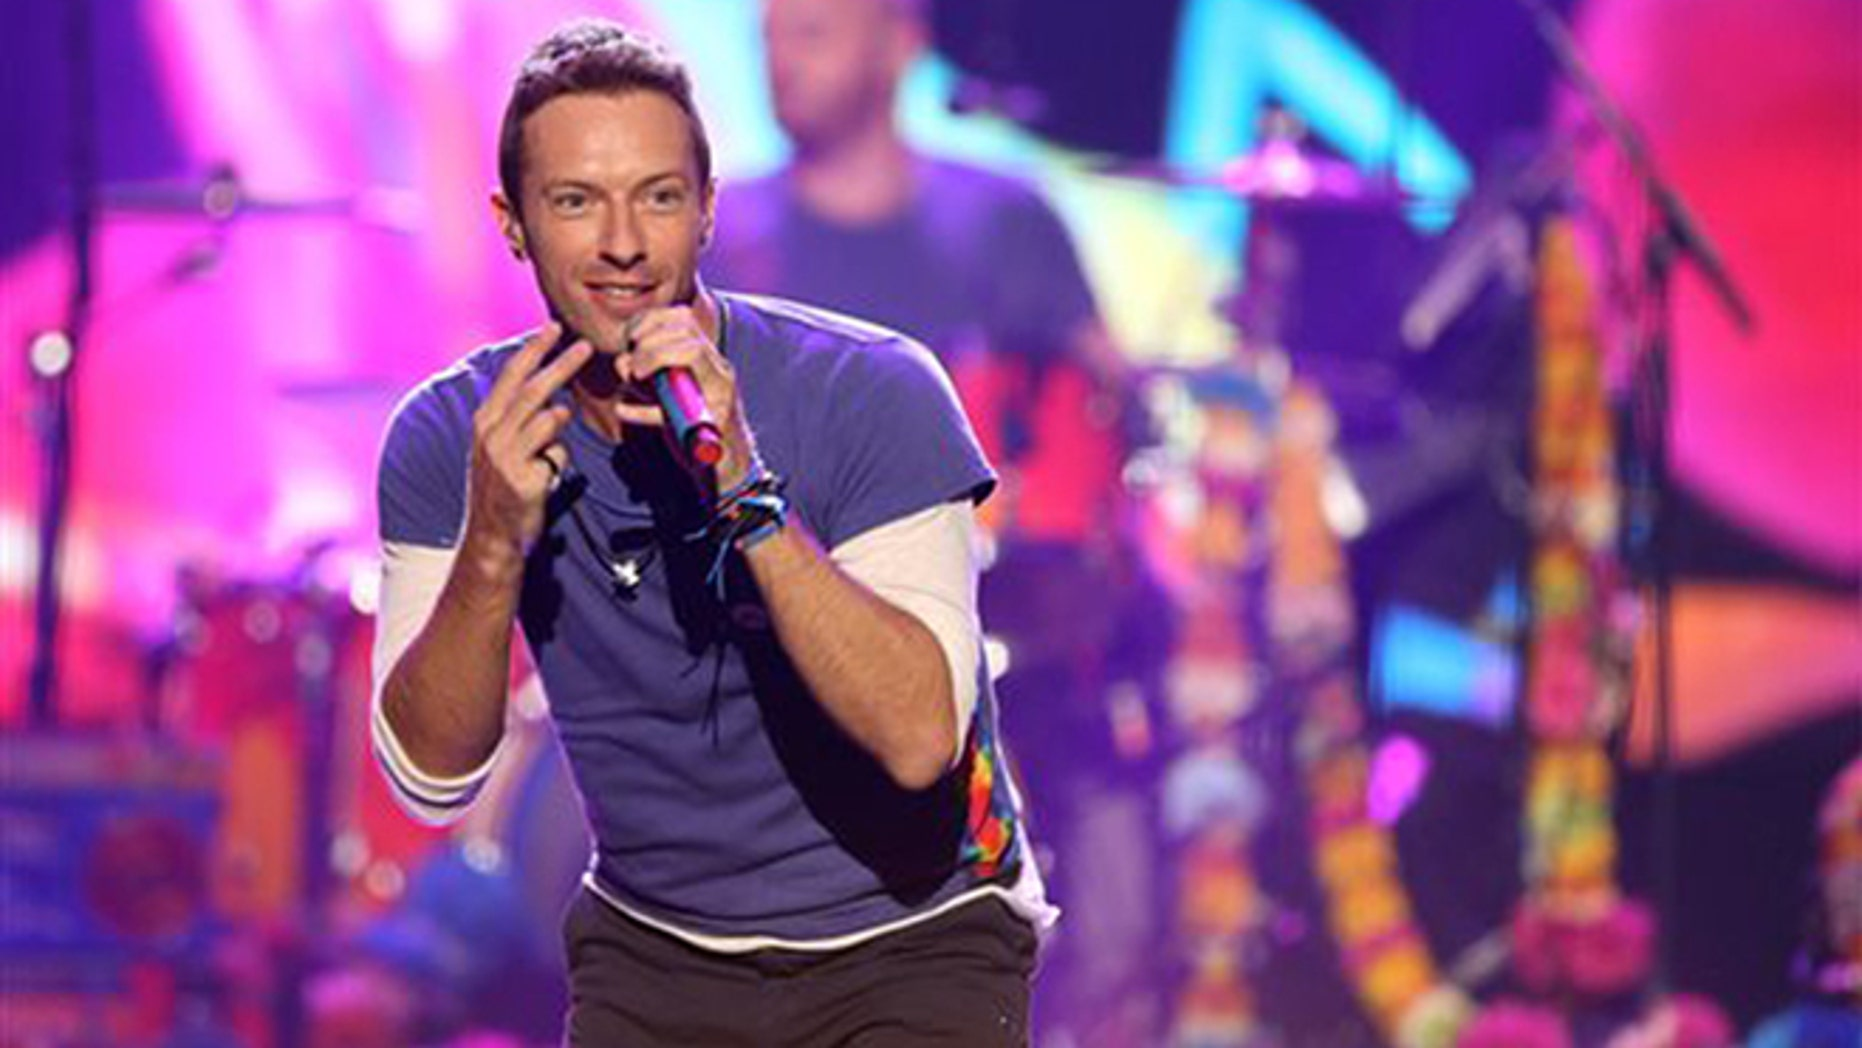 FILE - In this Sunday, Nov. 22, 2015 file photo, Chris Martin of Coldplay performs at the American Music Awards at the Microsoft Theater, in Los Angeles. (Photo by Matt Sayles/Invision/AP, File)